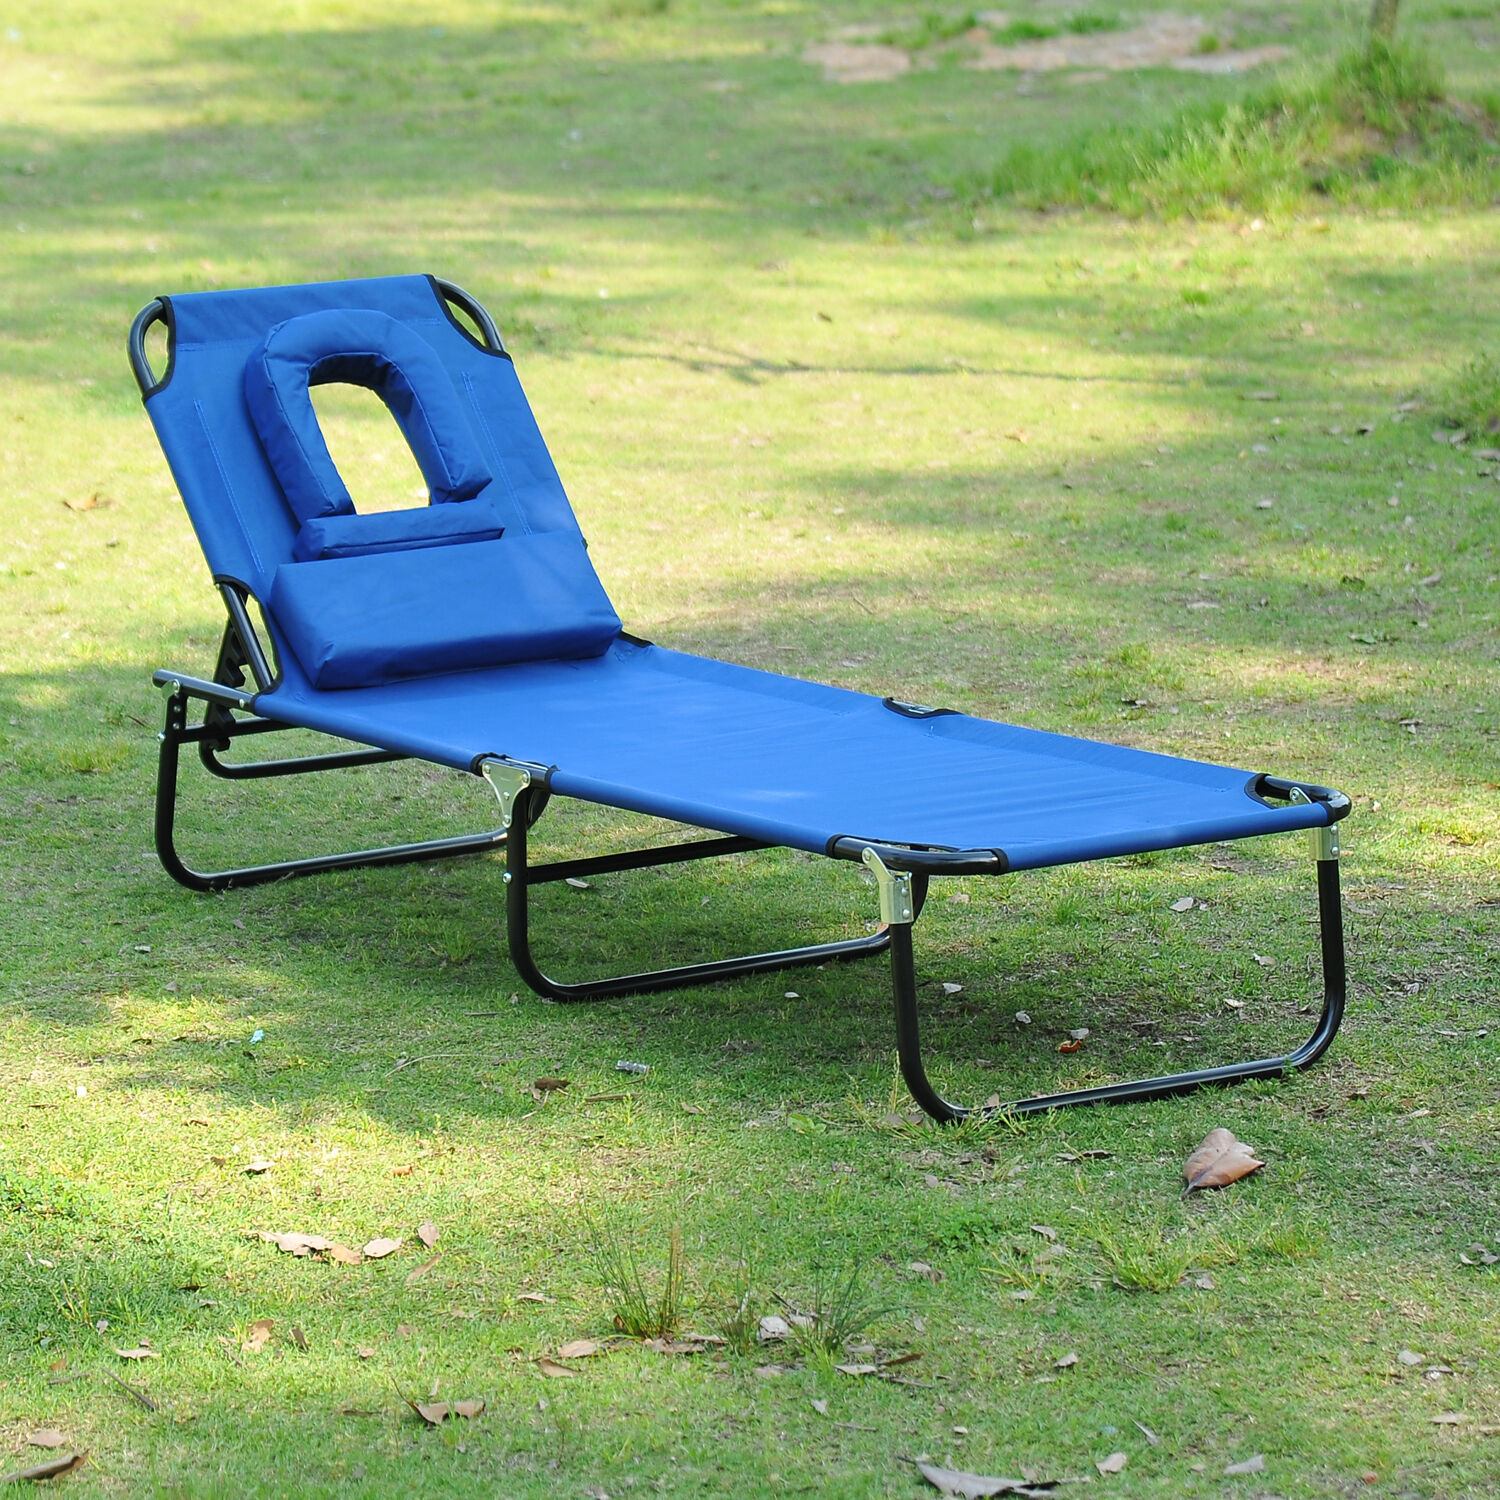 Beach Lounger Chair Outdoor Lounge Chair Portable Folding Garden Sun Lounger